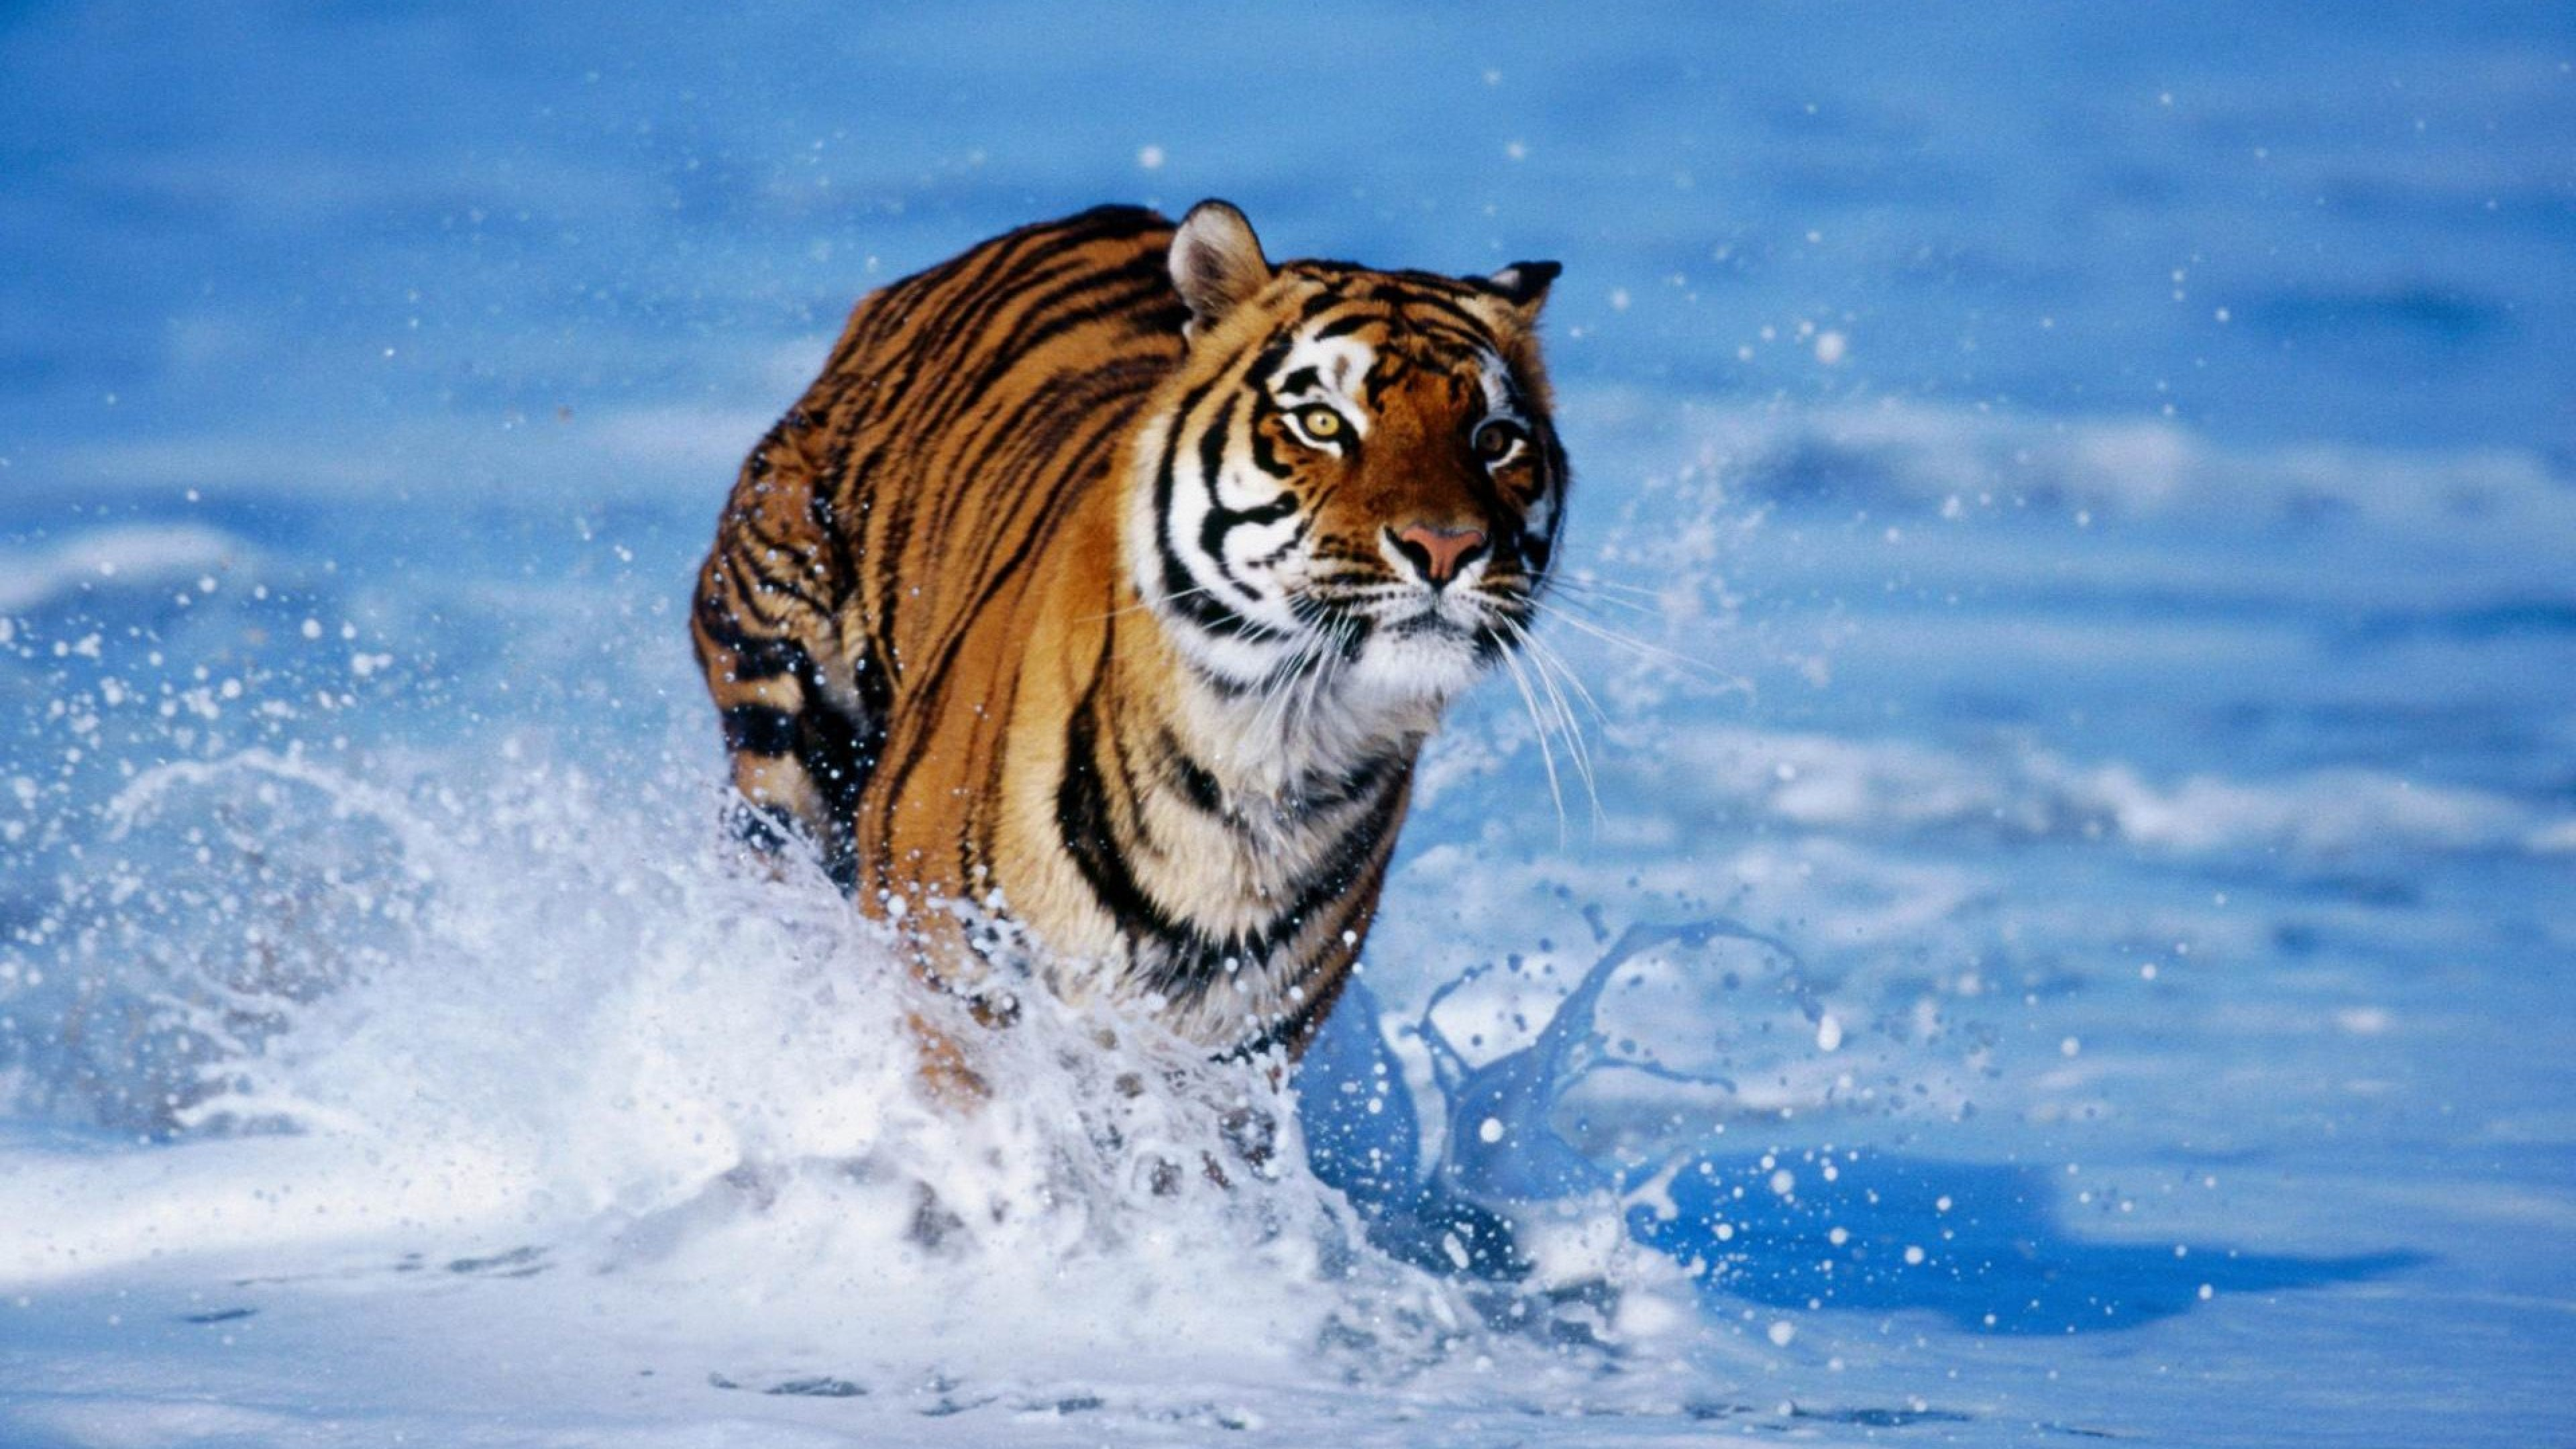 animals wallpapers free download 720p hd desktop images